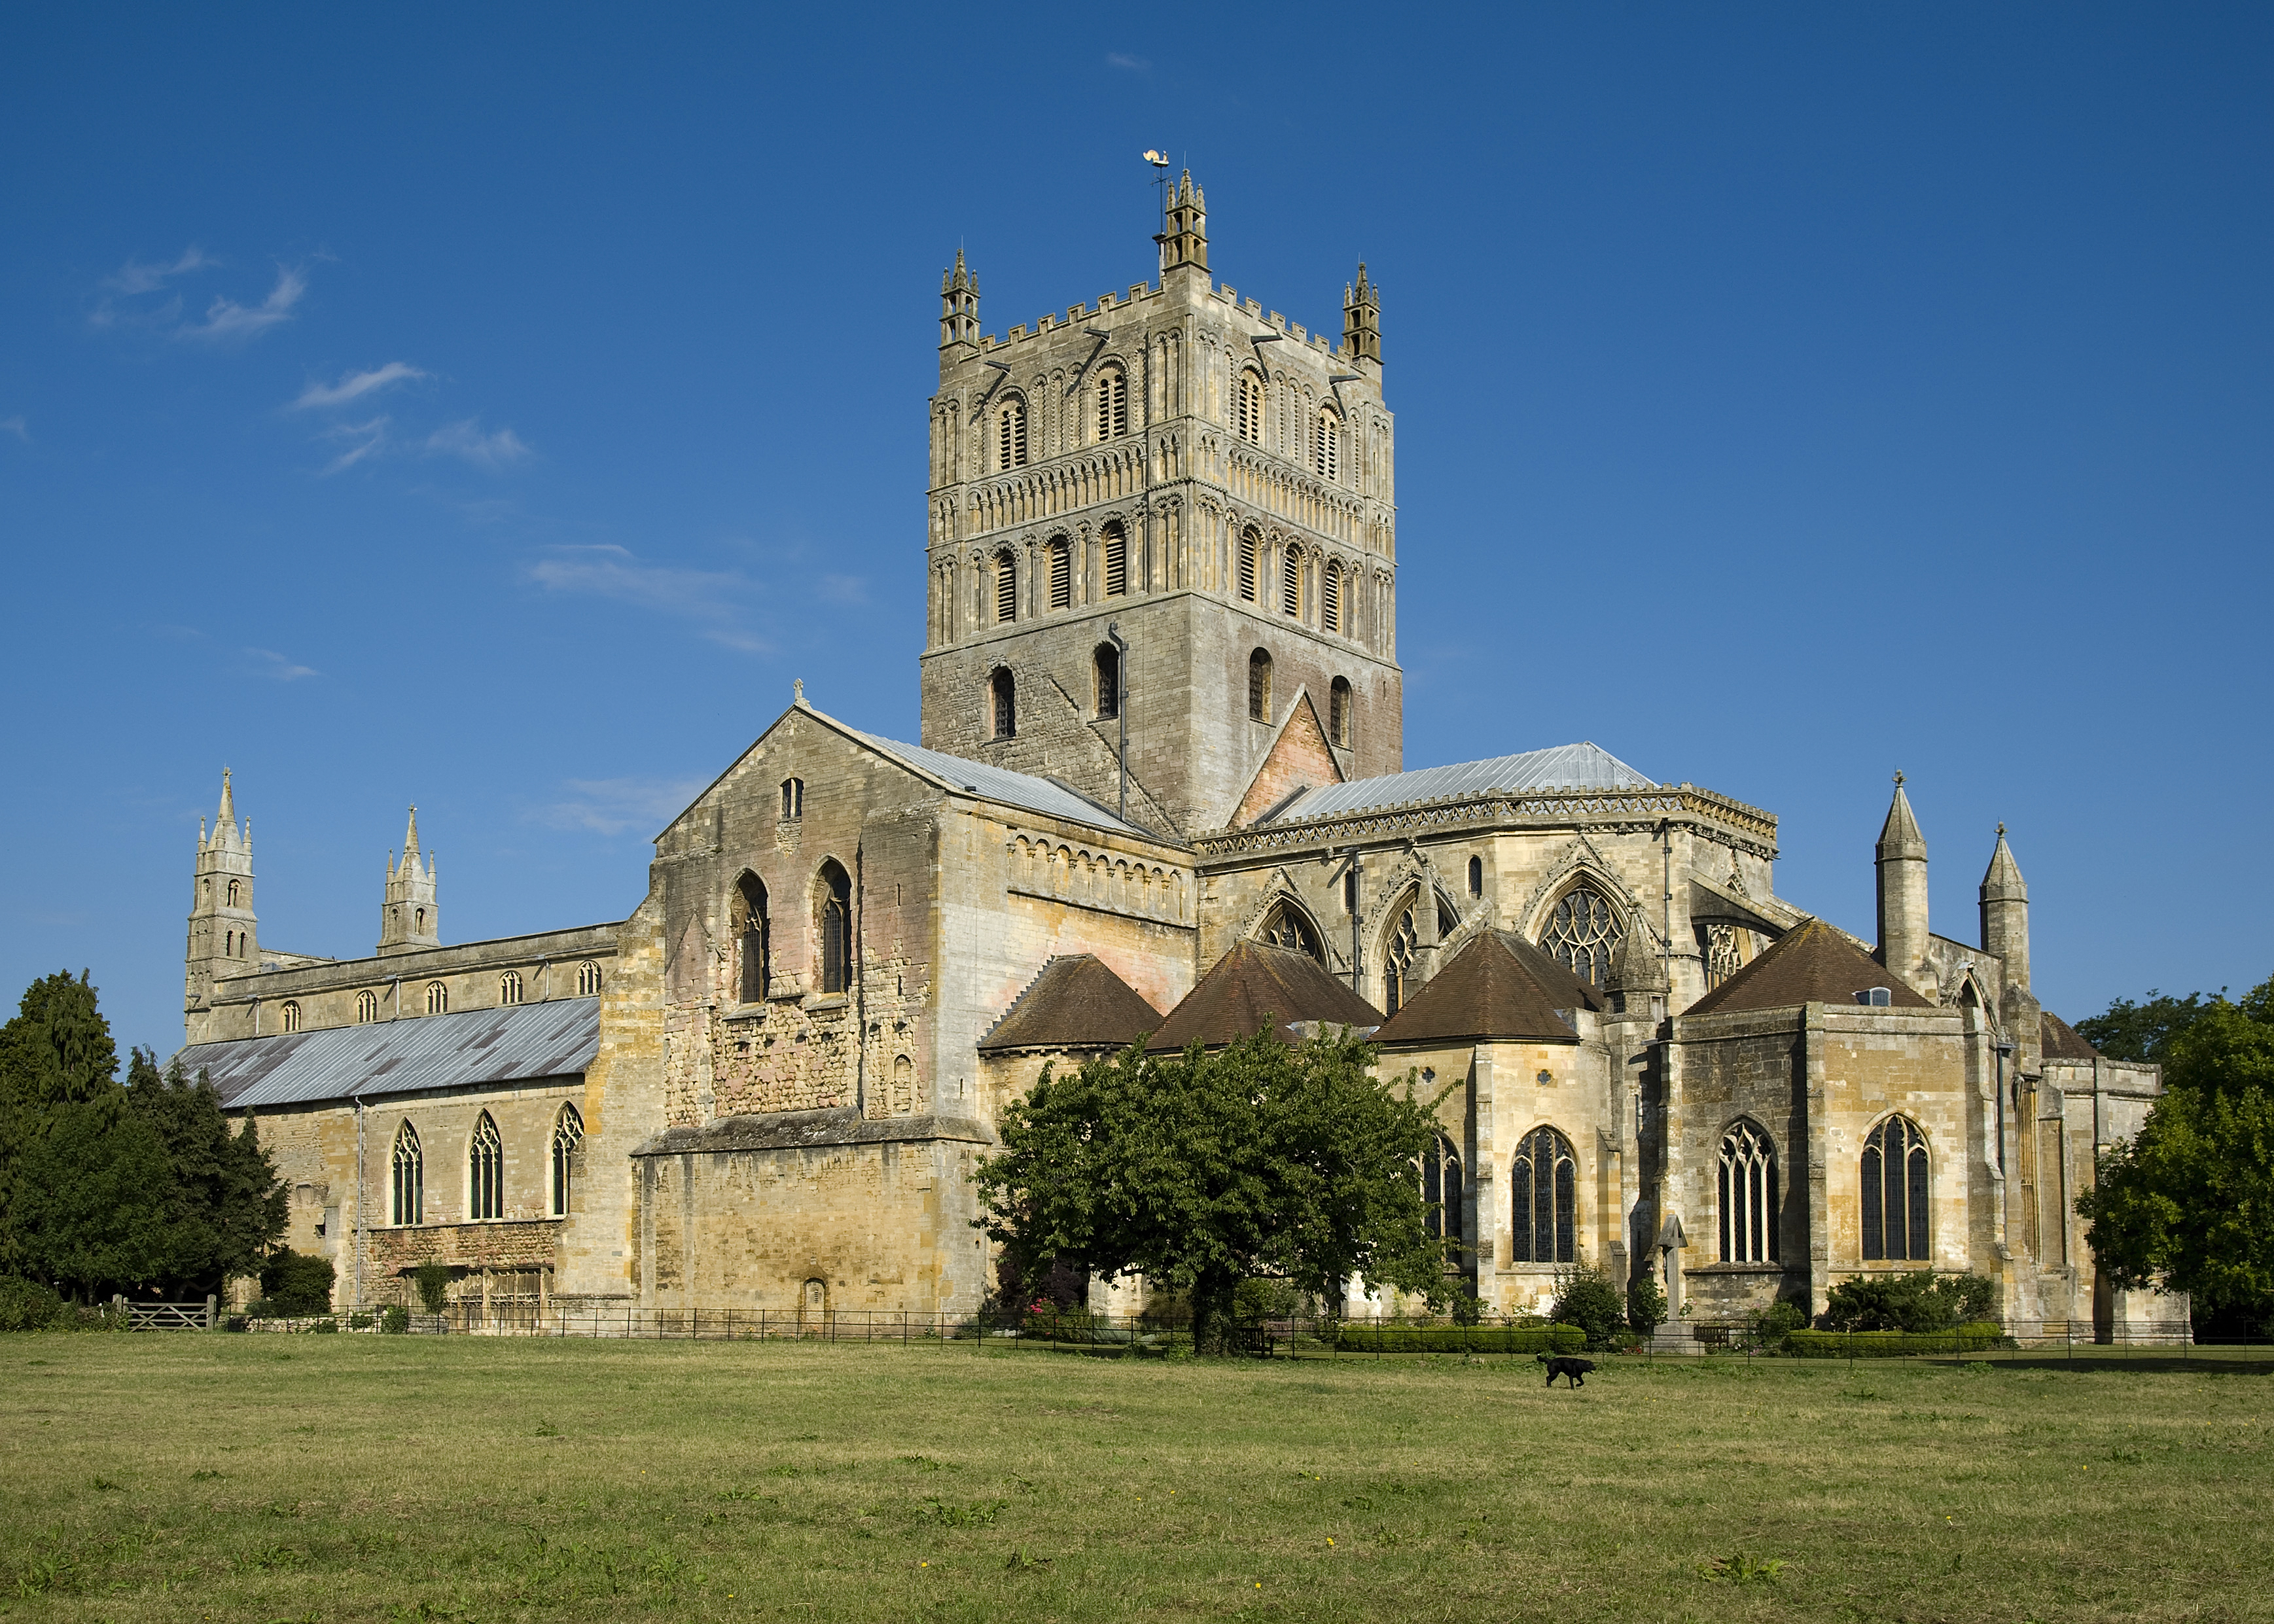 Tewkesbury_Abbey_2011.jpg